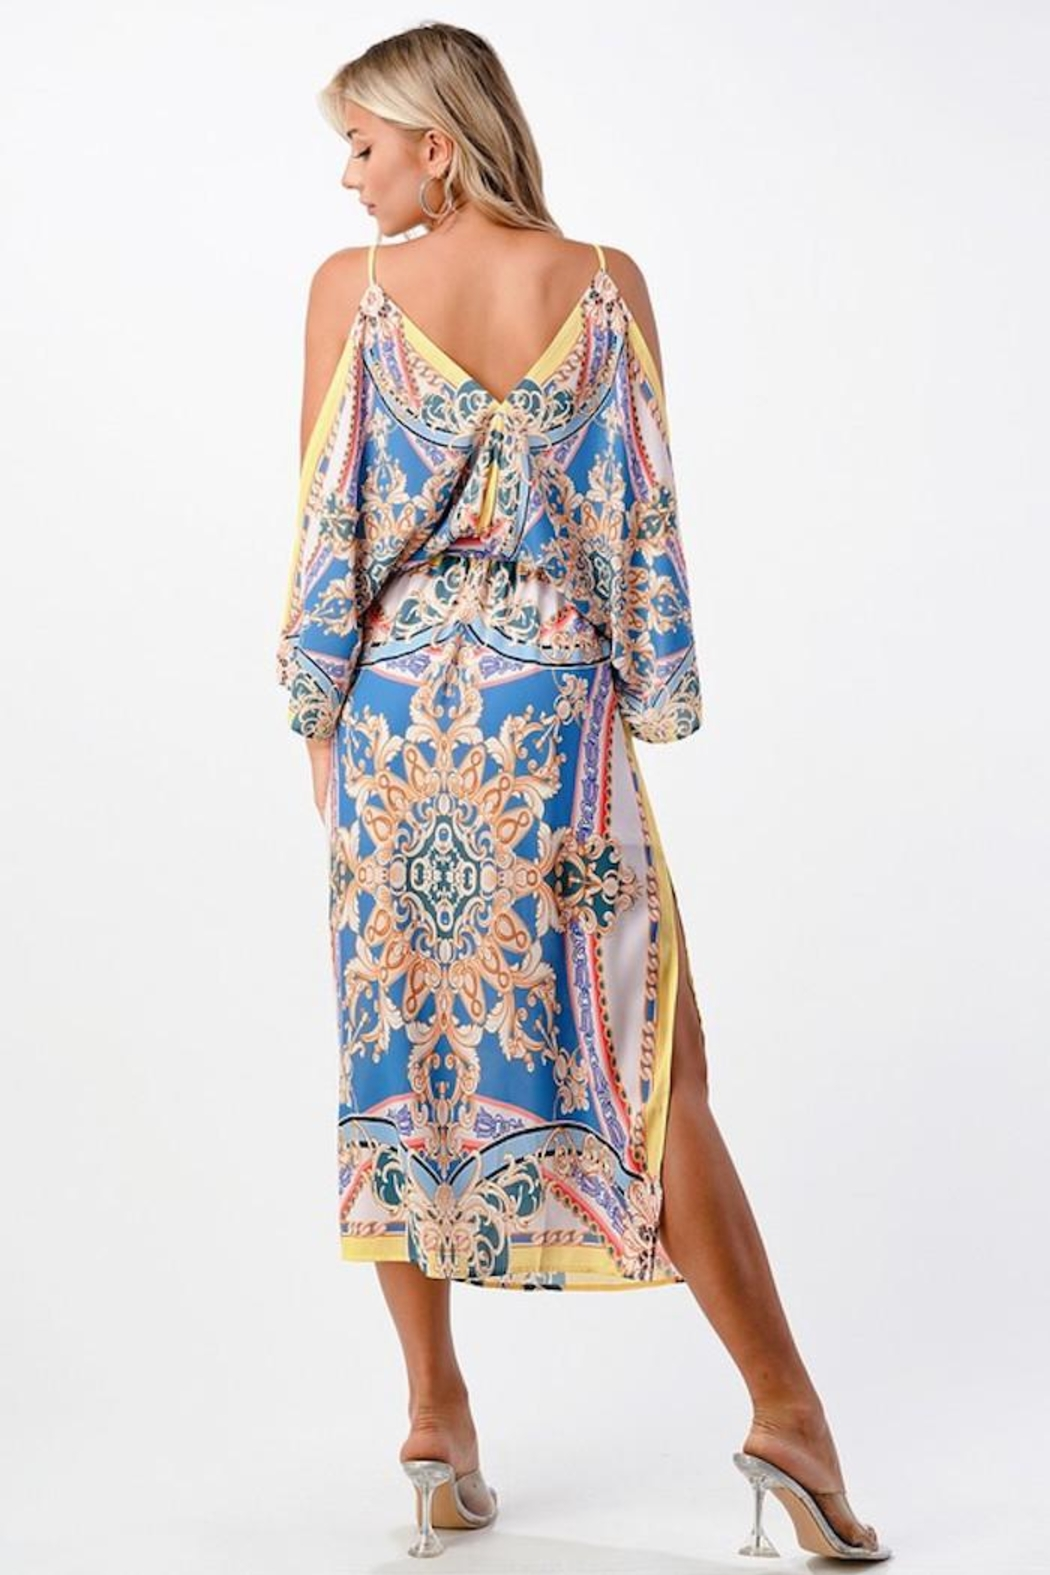 Imagine That Palma Ceia Dress - Front Cropped Image